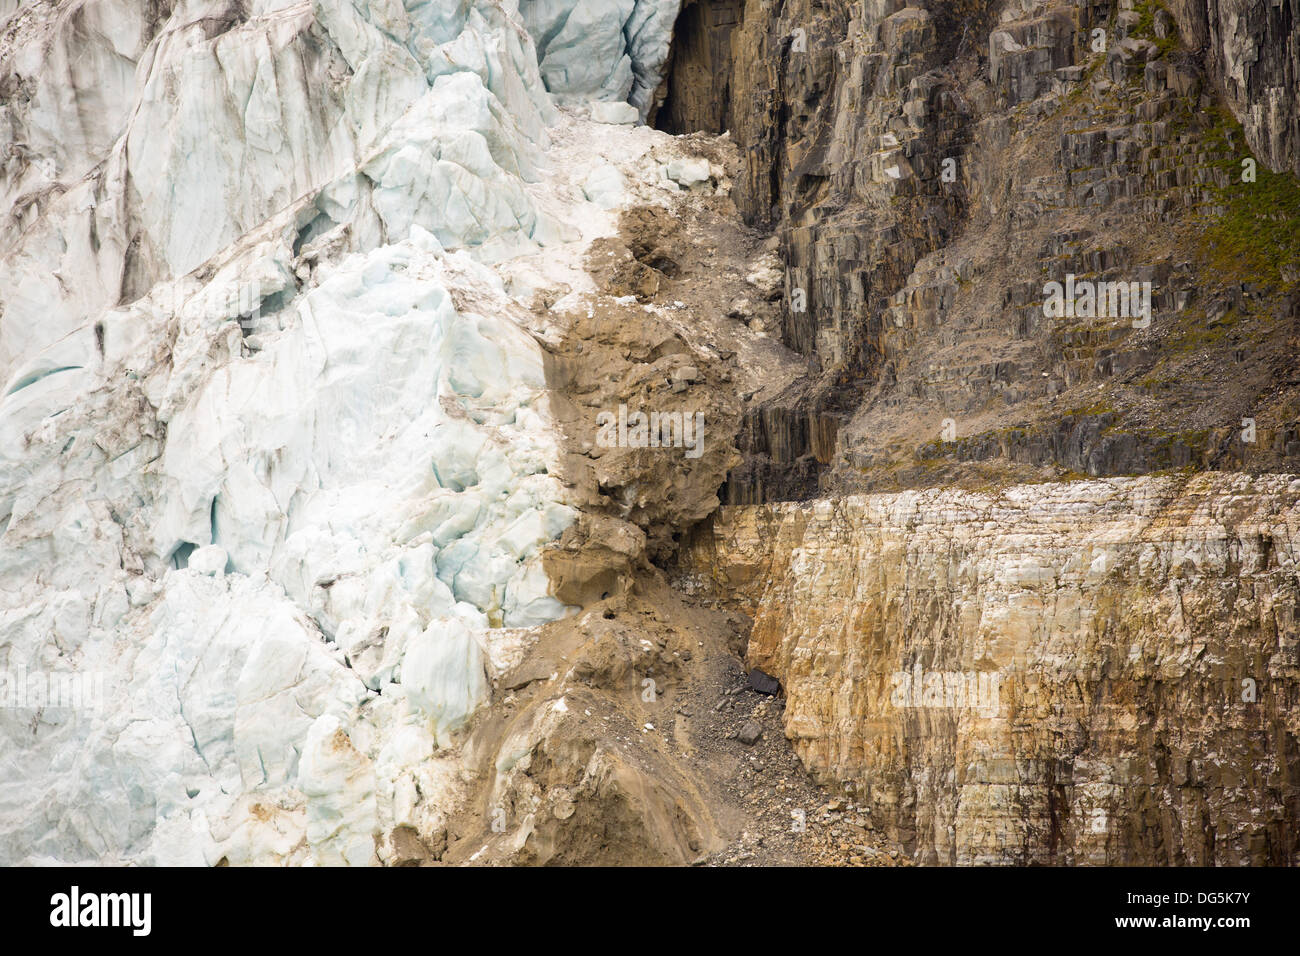 A glacier at Alkefjellet in northern Svalbard. At the side of the glacier is an unconformity where basalt rock has - Stock Image